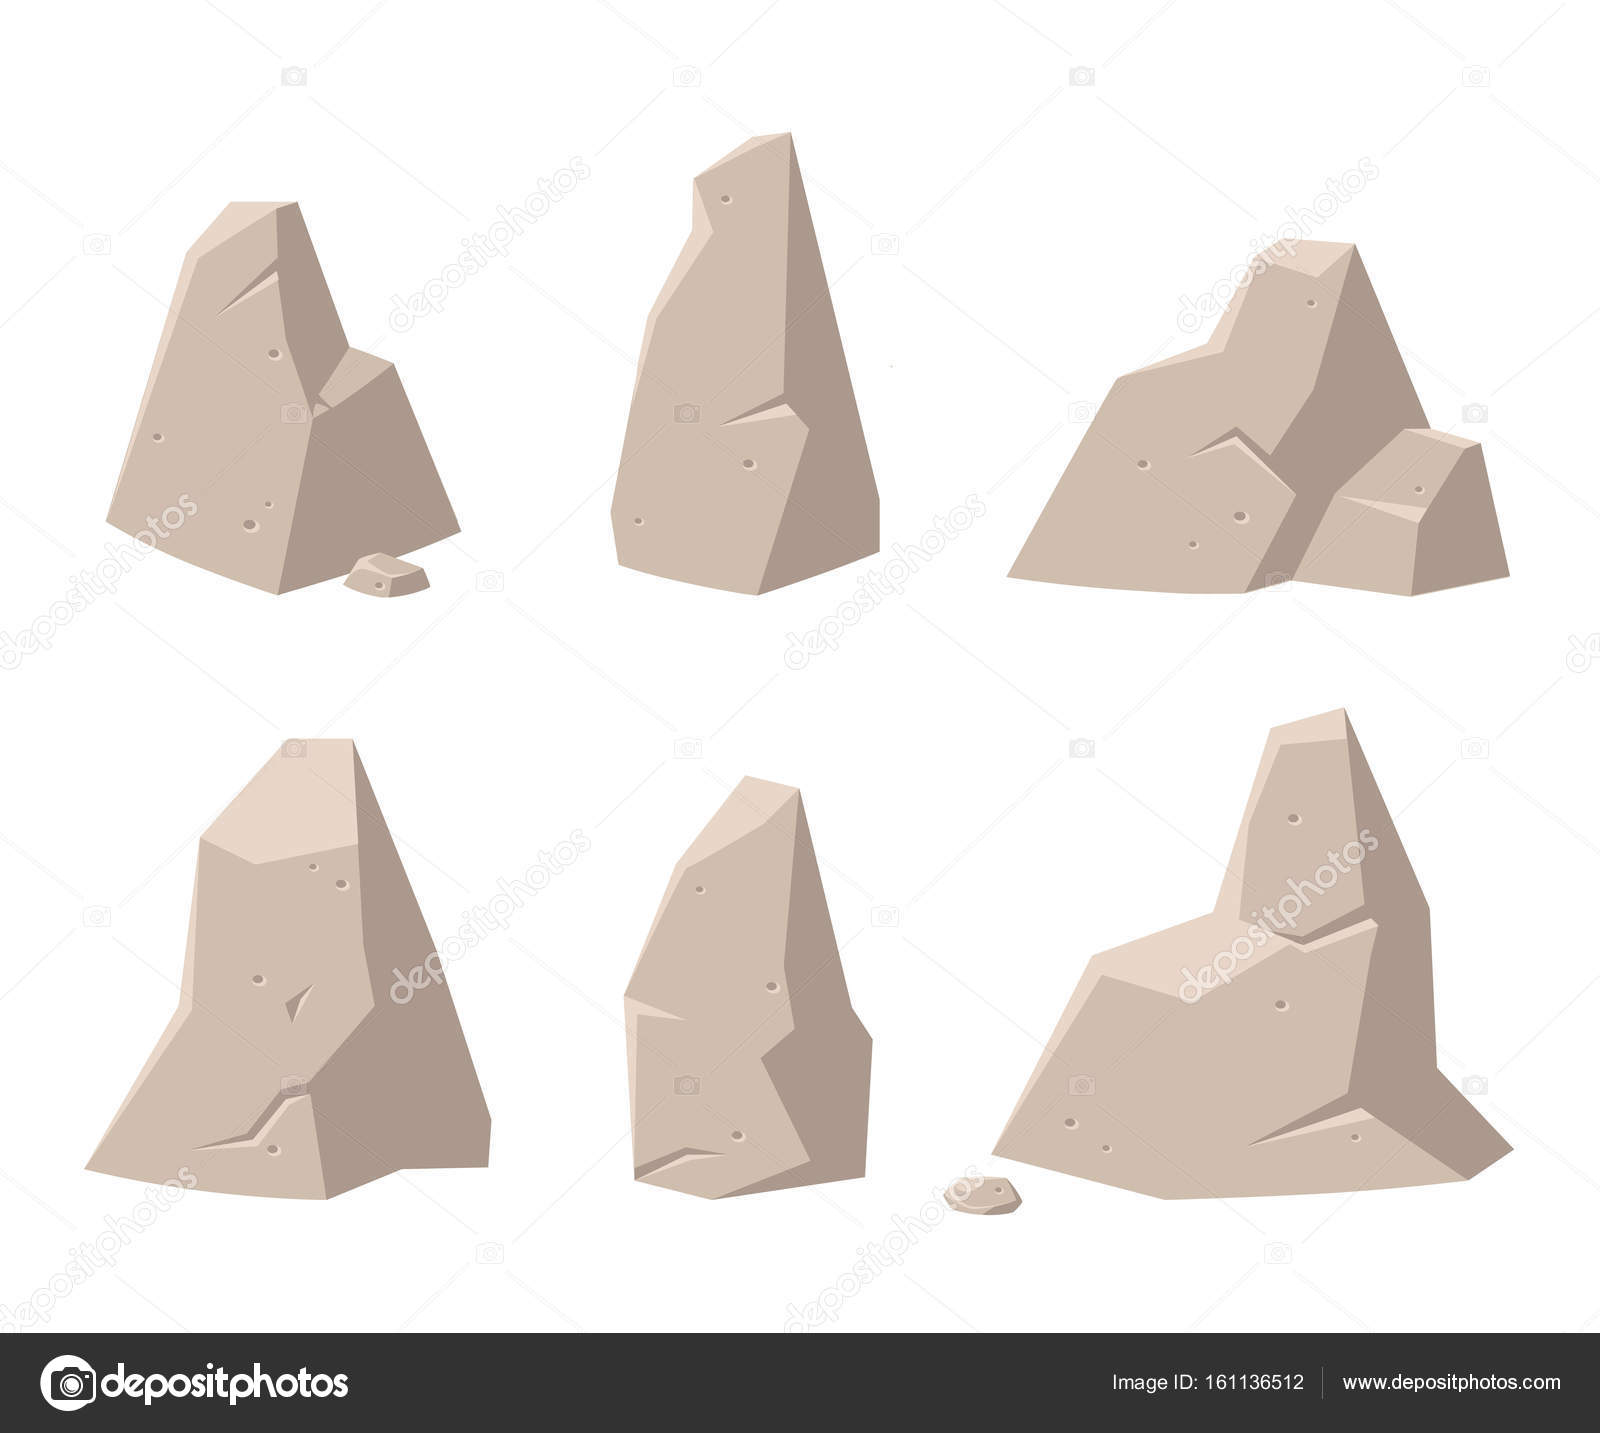 game backgrounds. set of rocks and stones for games. gui elements